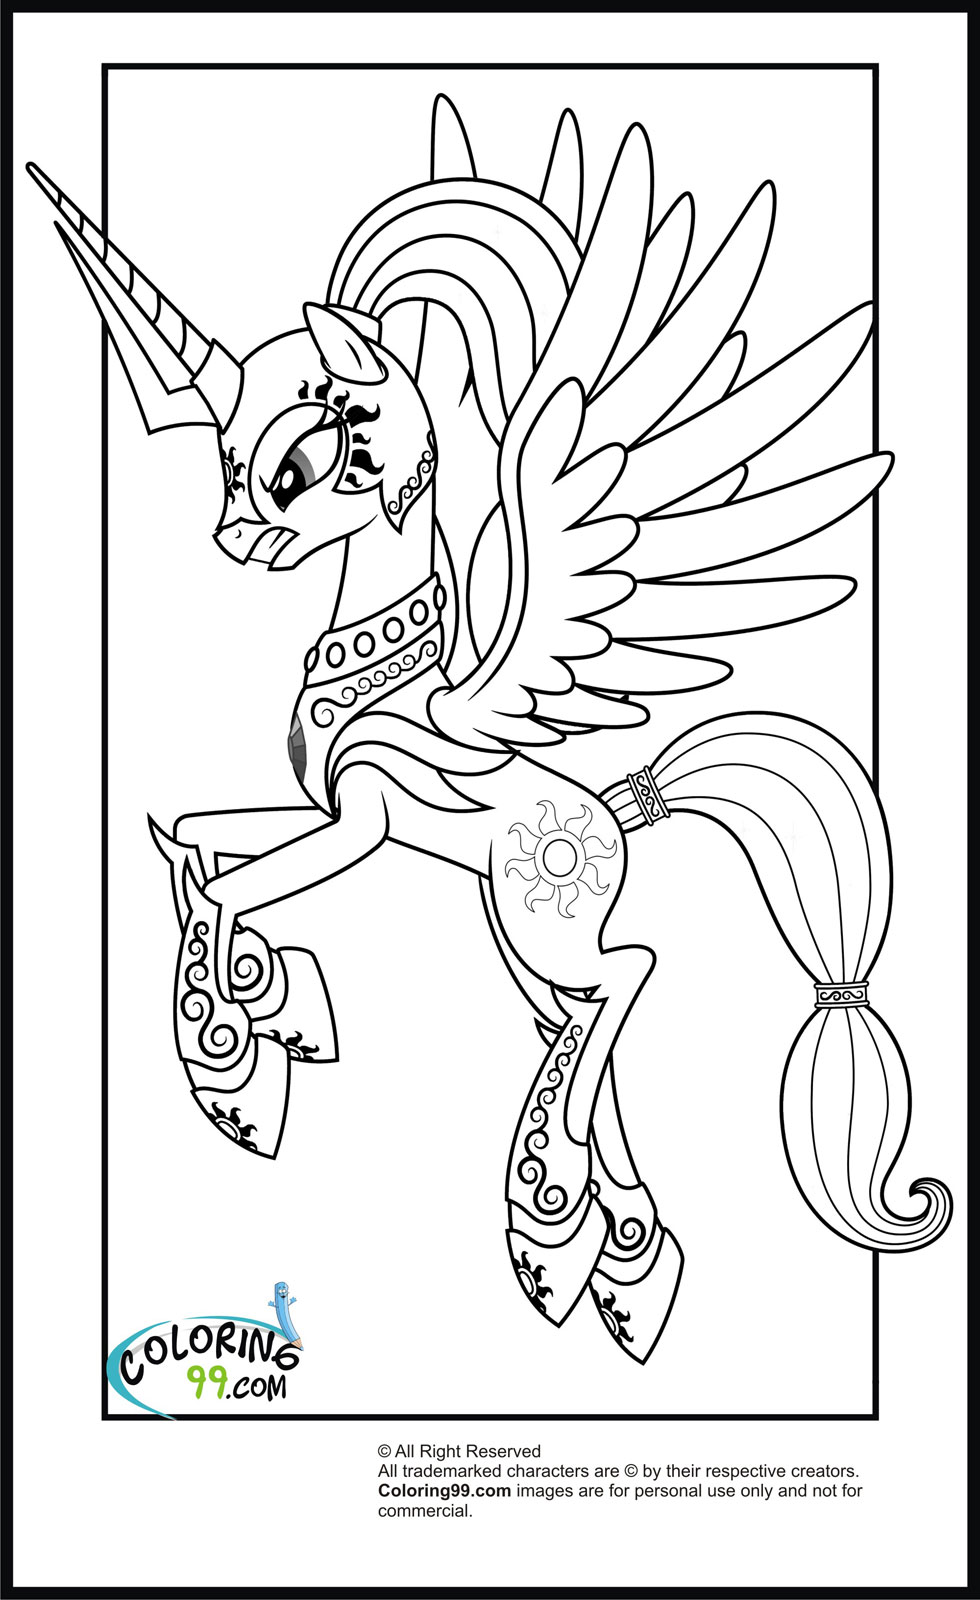 my little pony coloring pages desene de colorat micul meu ponei desktop my little pages my coloring pony little